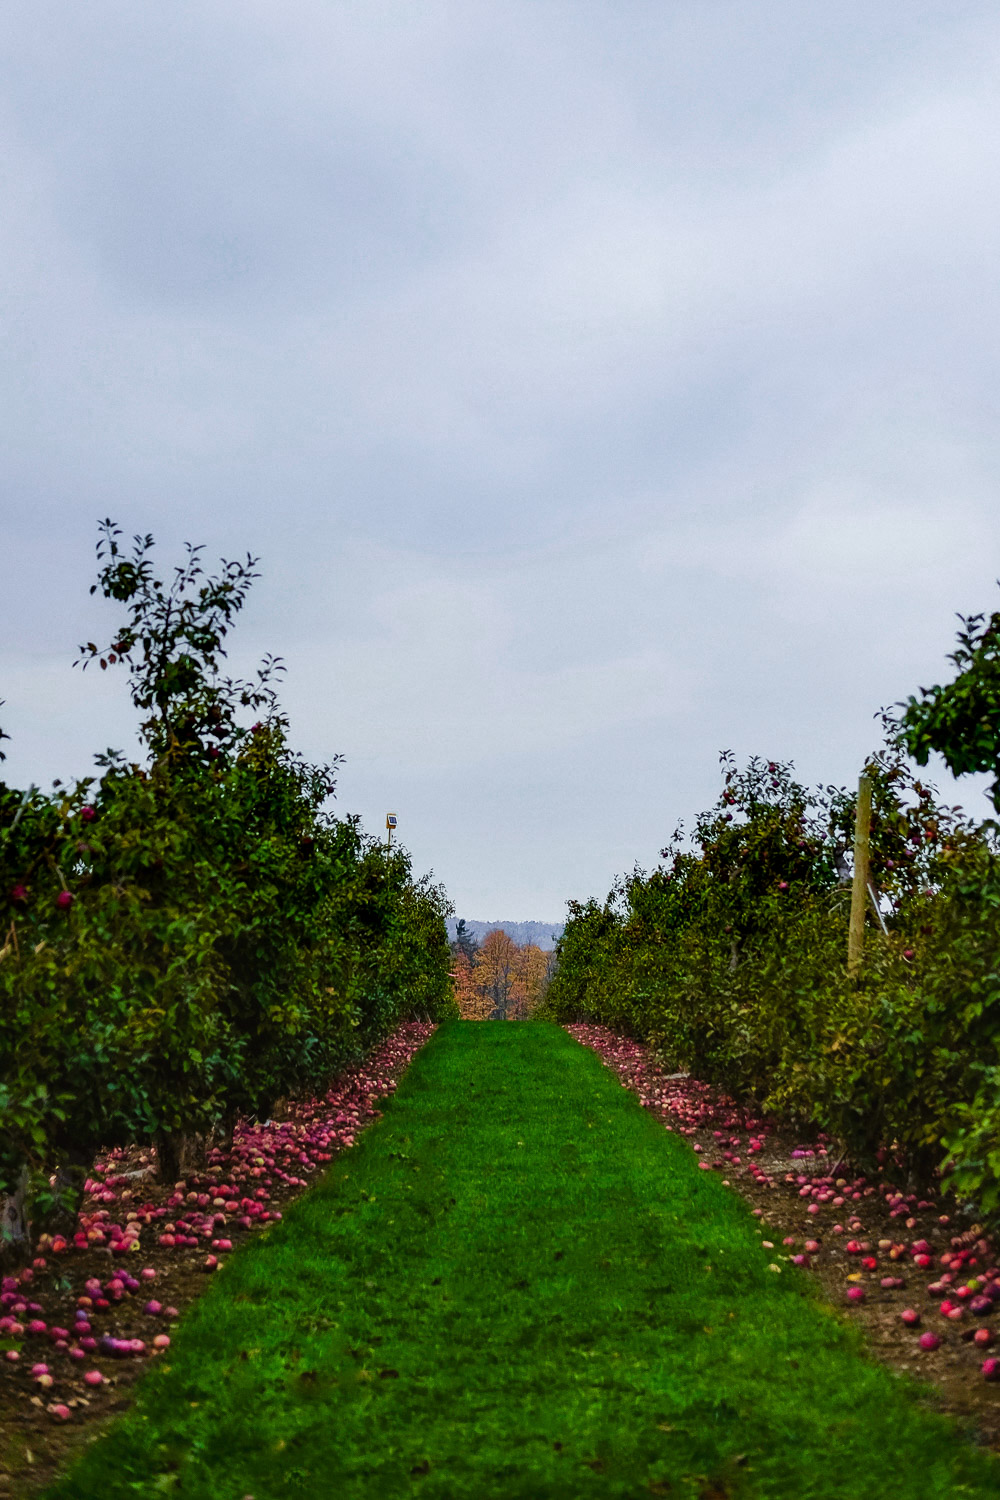 The apple orchards at Chudleigh's Apple Farm